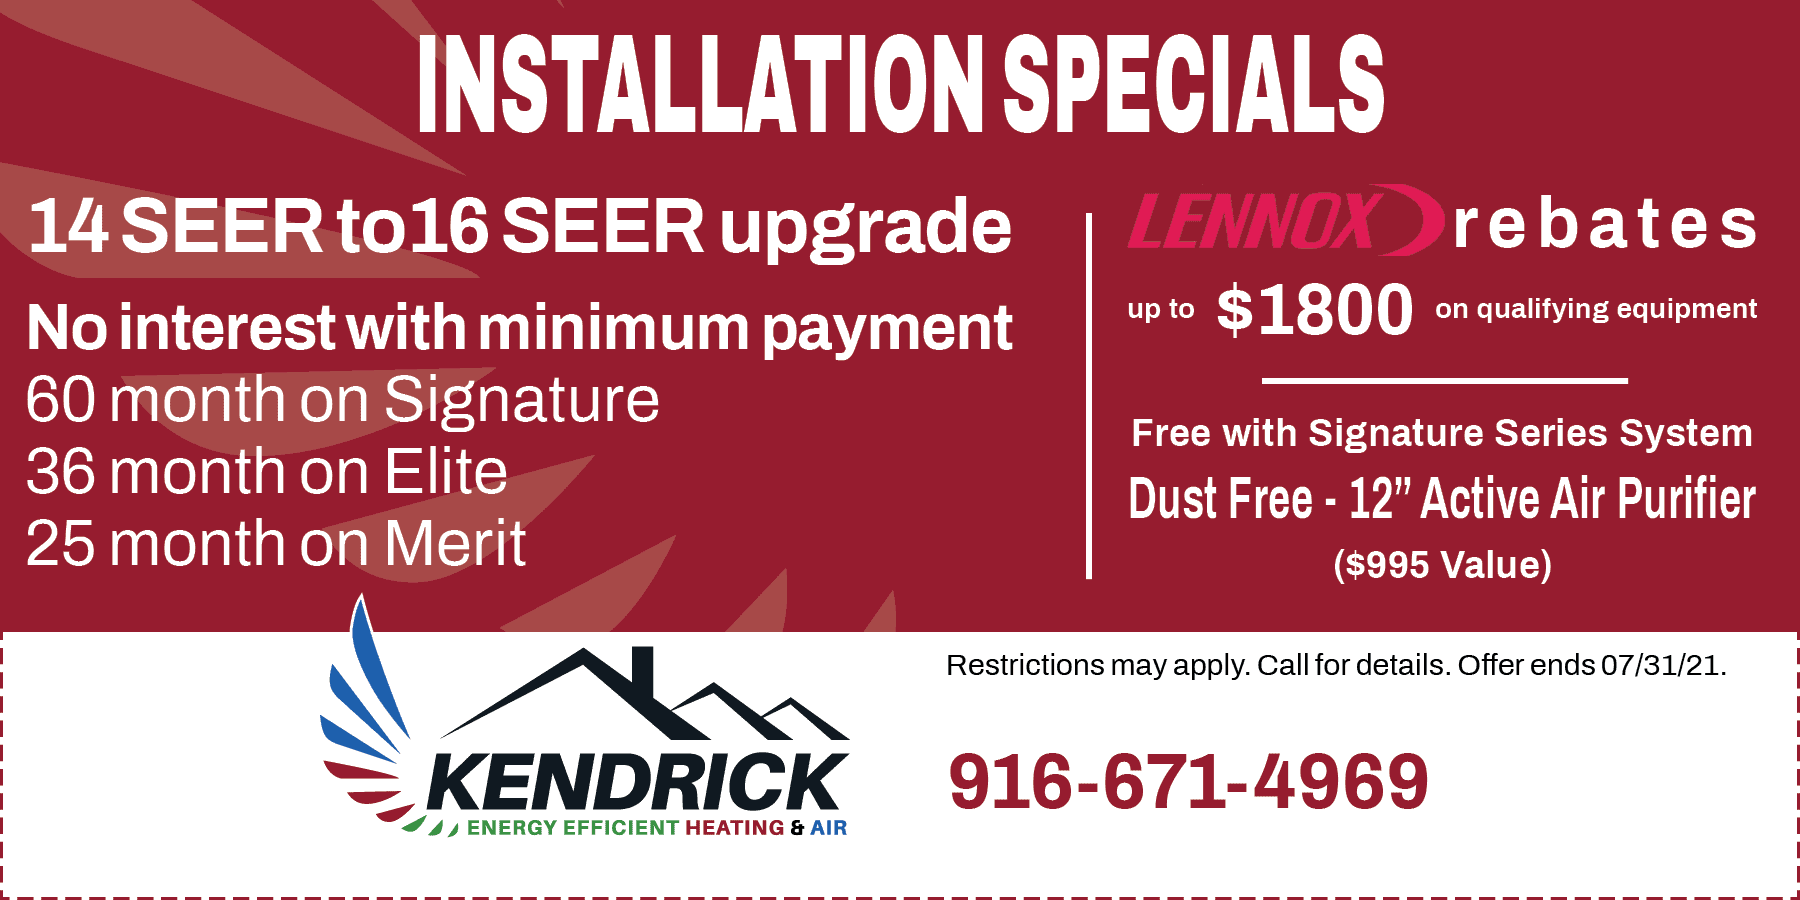 Kendrick special offers